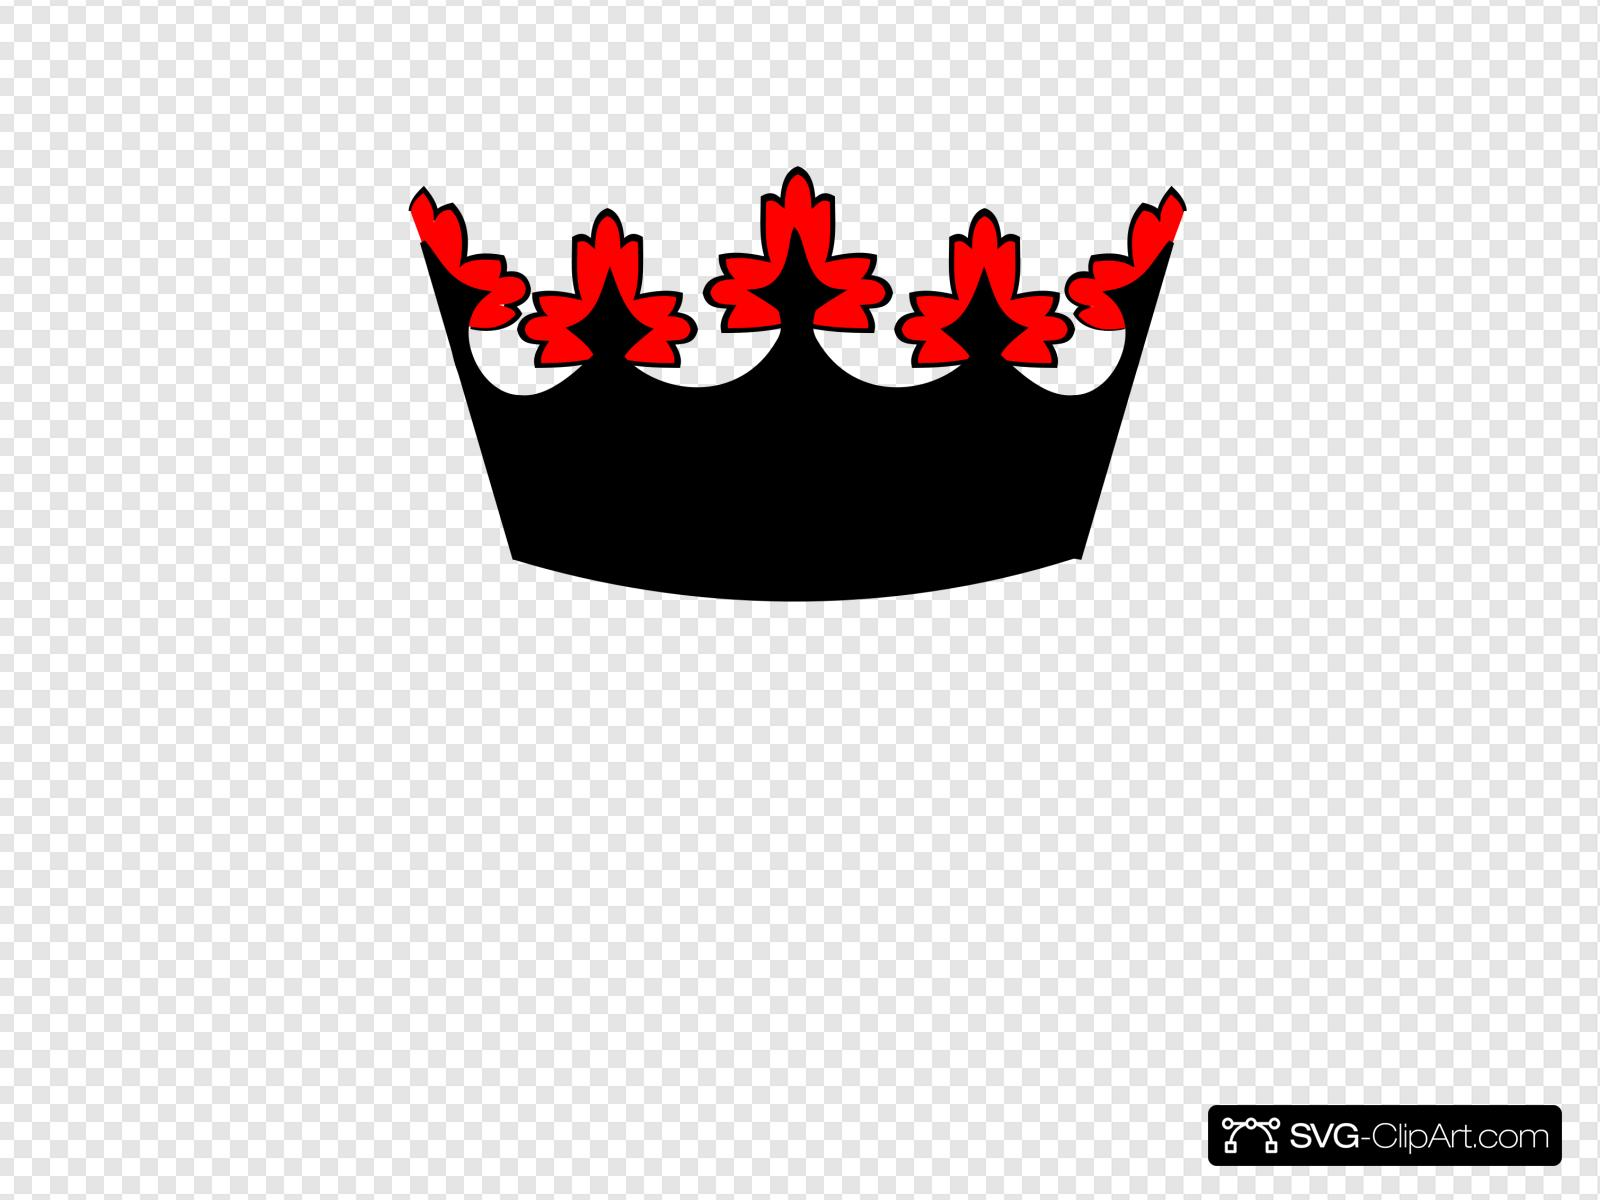 Black And Red Crown Clip art, Icon and SVG.